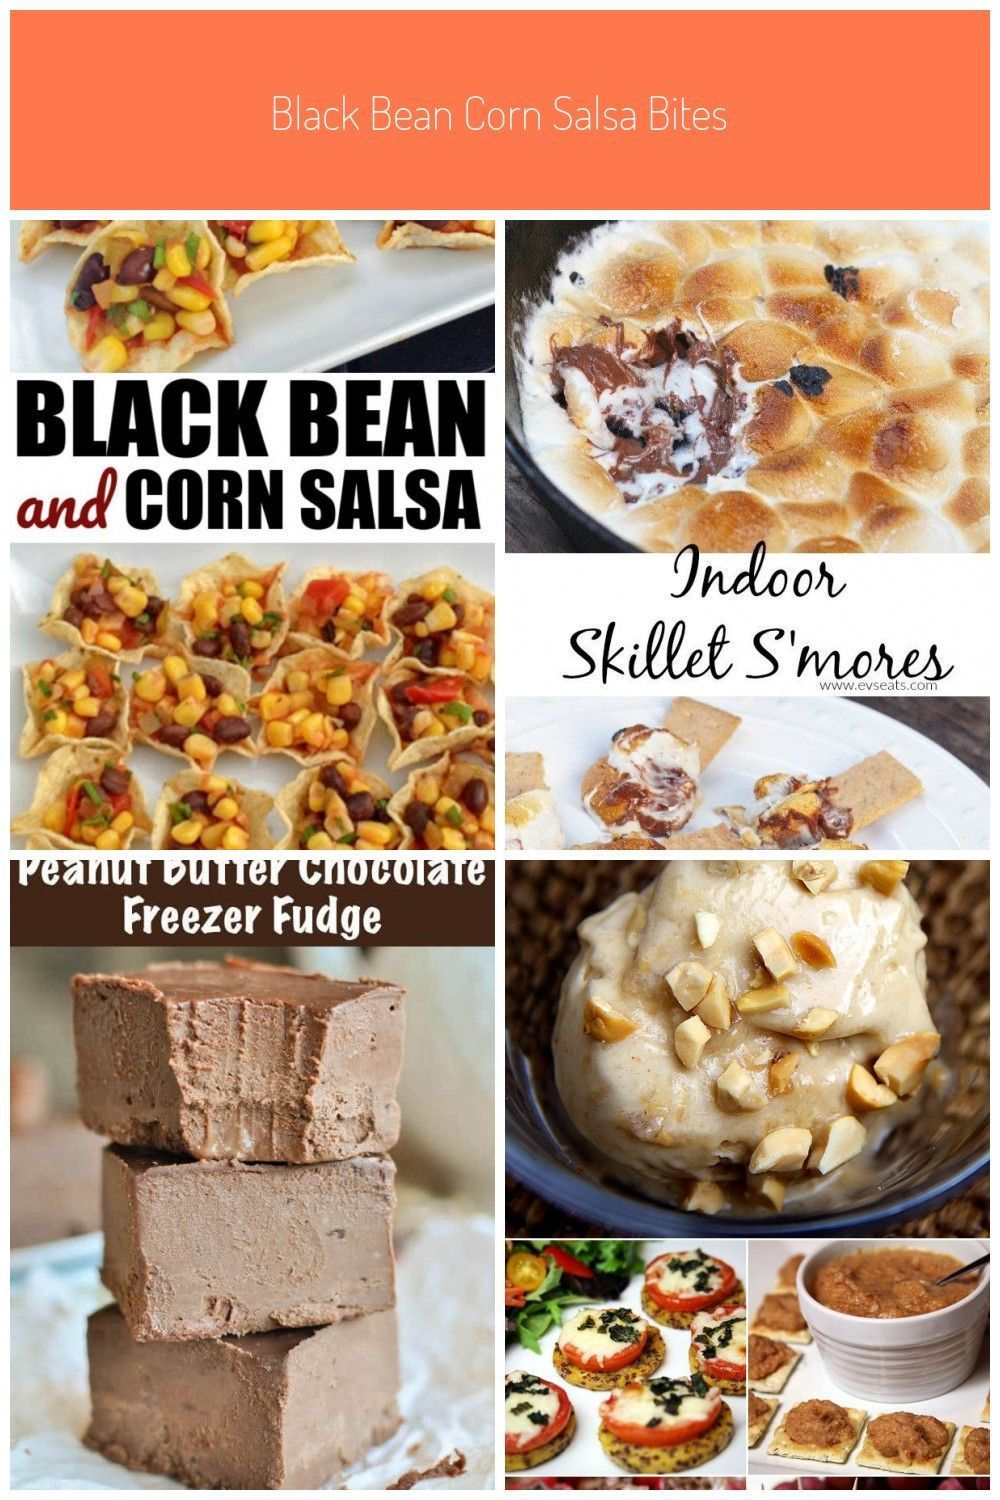 Black Bean and Corn Salsa is so easy to make and takes just 5 minutes of prep. Serve it on top of Tostitos Scoops for an easy game day appetizer or movie night snack. #late night snacks Black Bean Corn Salsa Bites #movienightsnacks Black Bean and Corn Salsa is so easy to make and takes just 5 minutes of prep. Serve it on top of Tostitos Scoops for an easy game day appetizer or movie night snack. #late night snacks Black Bean Corn Salsa Bites #movienightsnacks Black Bean and Corn Salsa is so easy #movienightsnacks